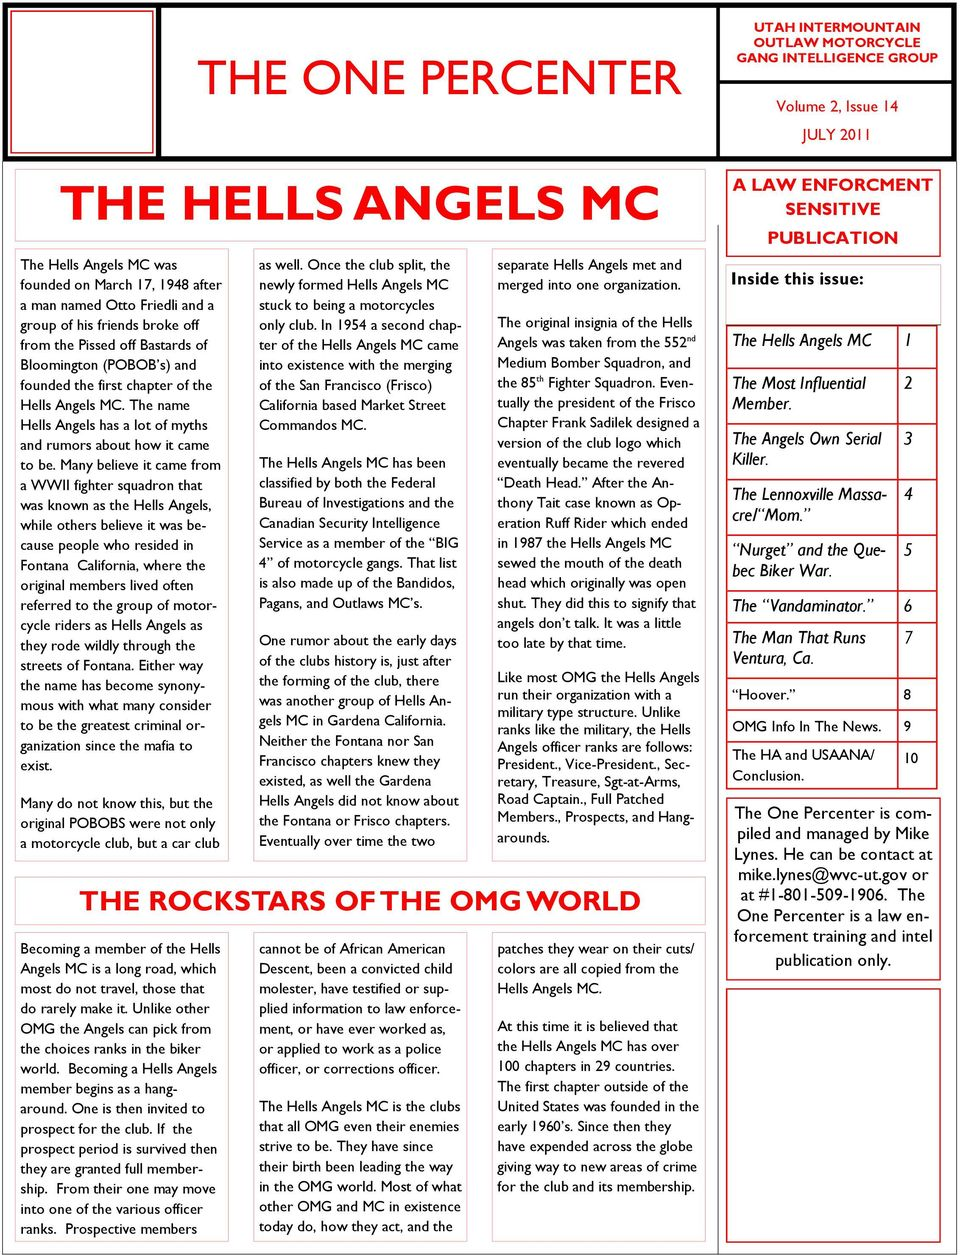 THE ONE PERCENTER THE HELLS ANGELS MC THE ROCKSTARS OF THE OMG WORLD